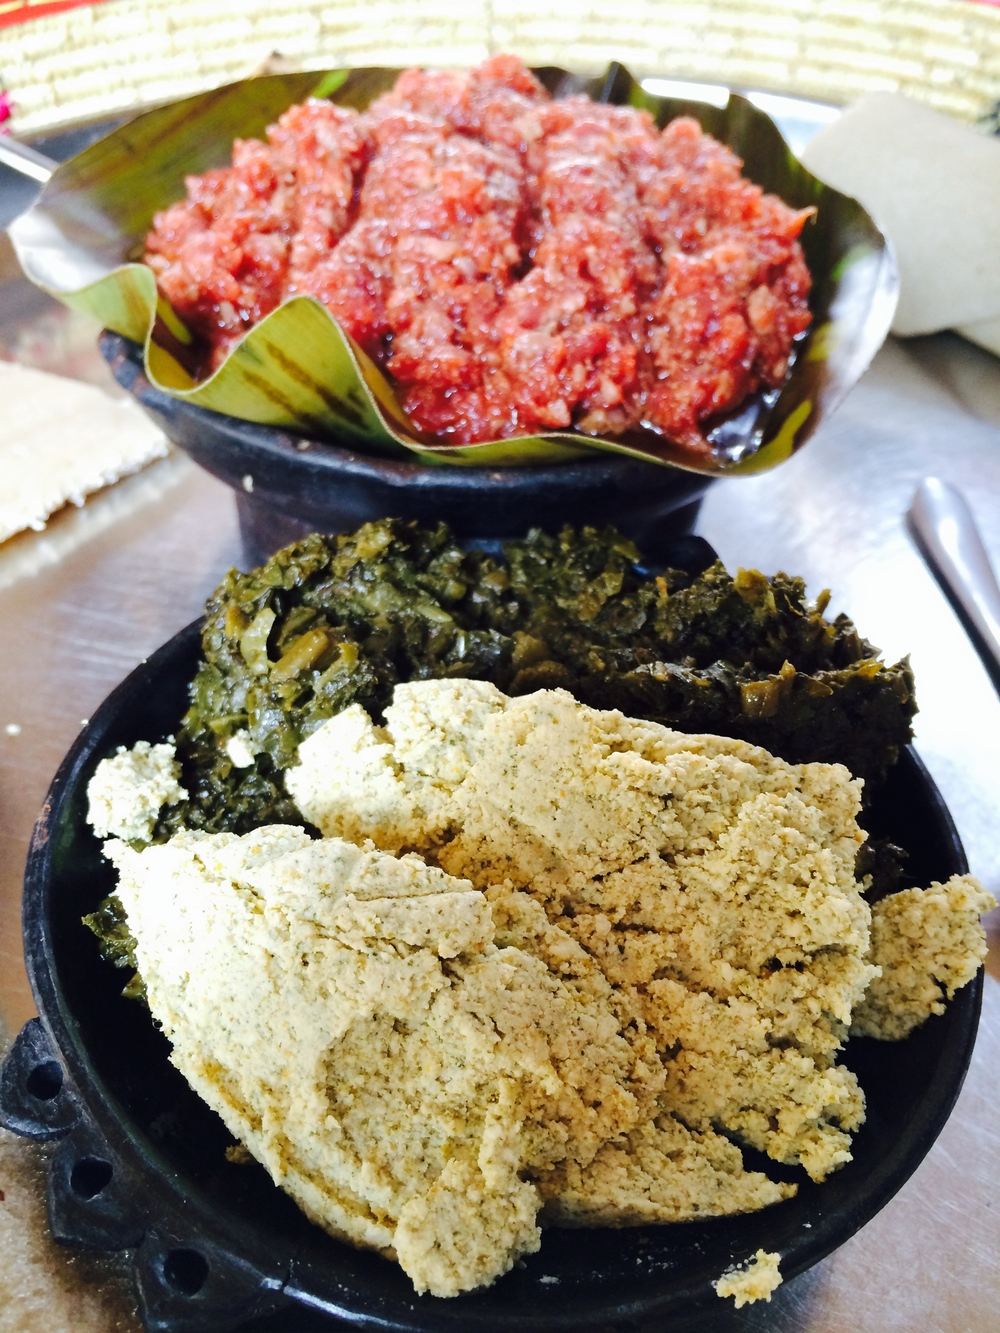 Kitfo, Ayib and Collared Greens